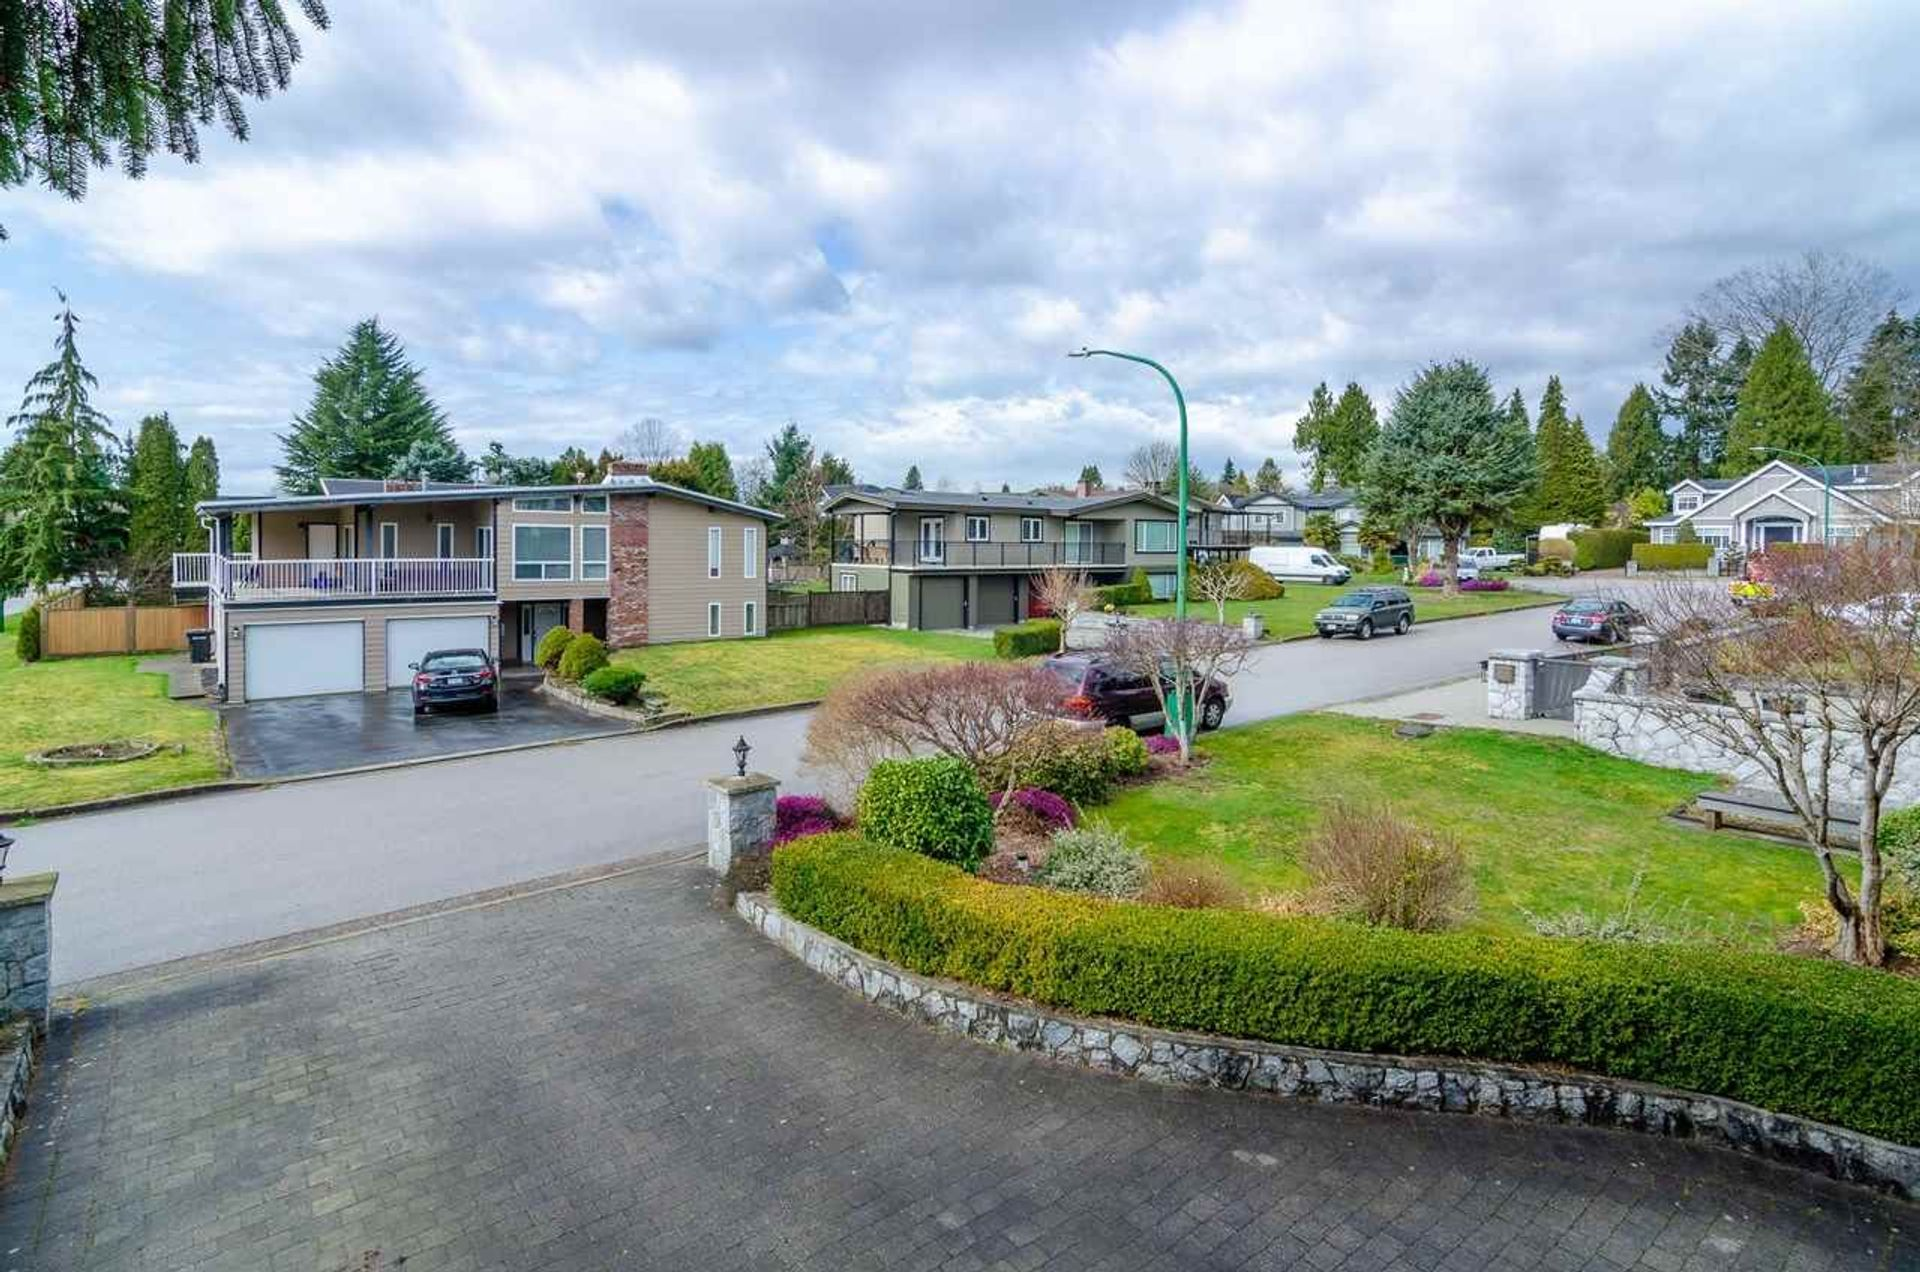 3880-epping-court-government-road-burnaby-north-28 at 3880 Epping Court, Government Road, Burnaby North